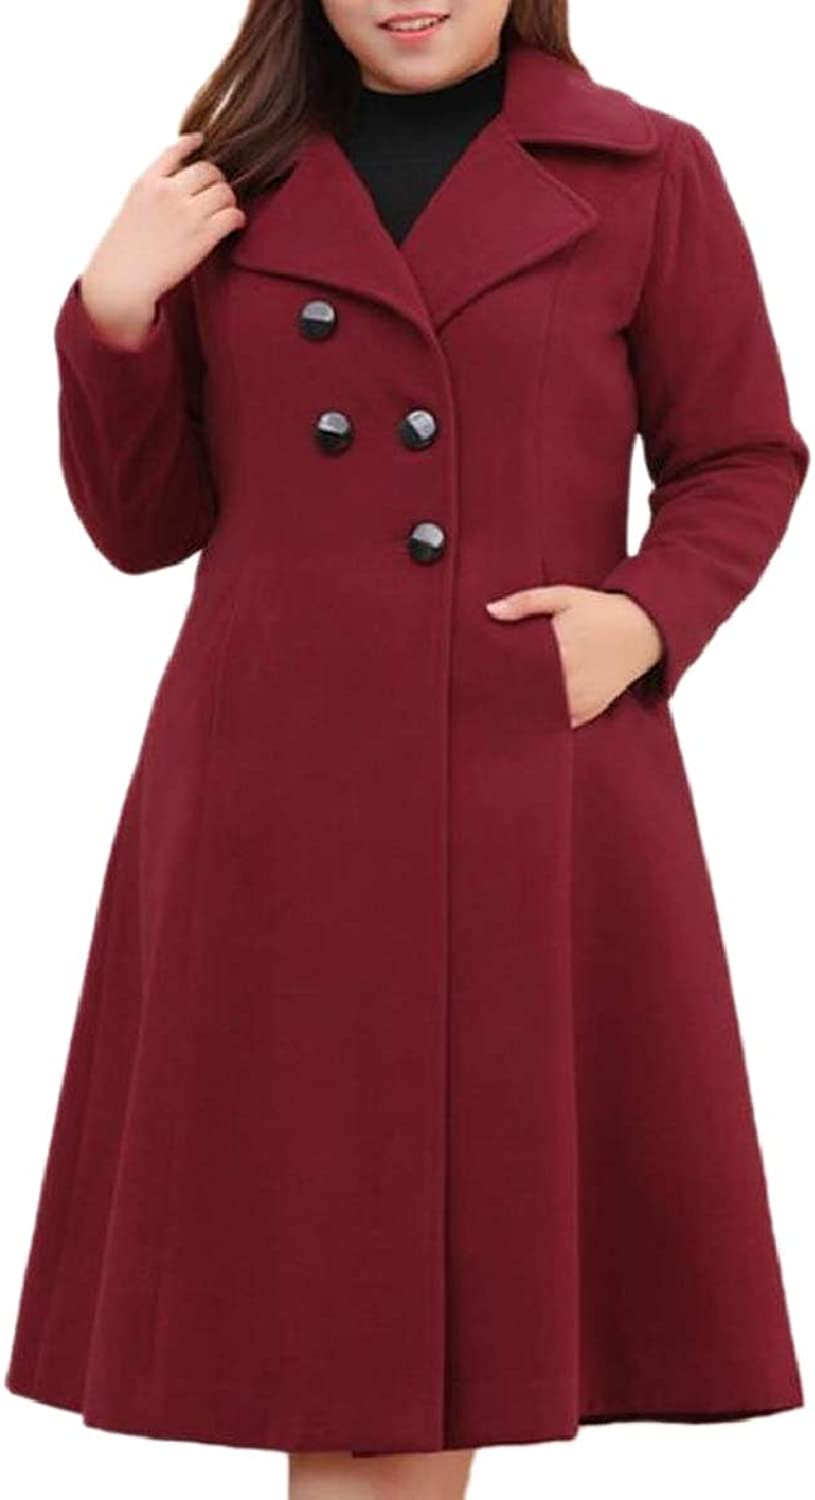 TymhgtCA Womens PlusSize Wool Blended Jacket DoubleBreasted Long Pea Coat